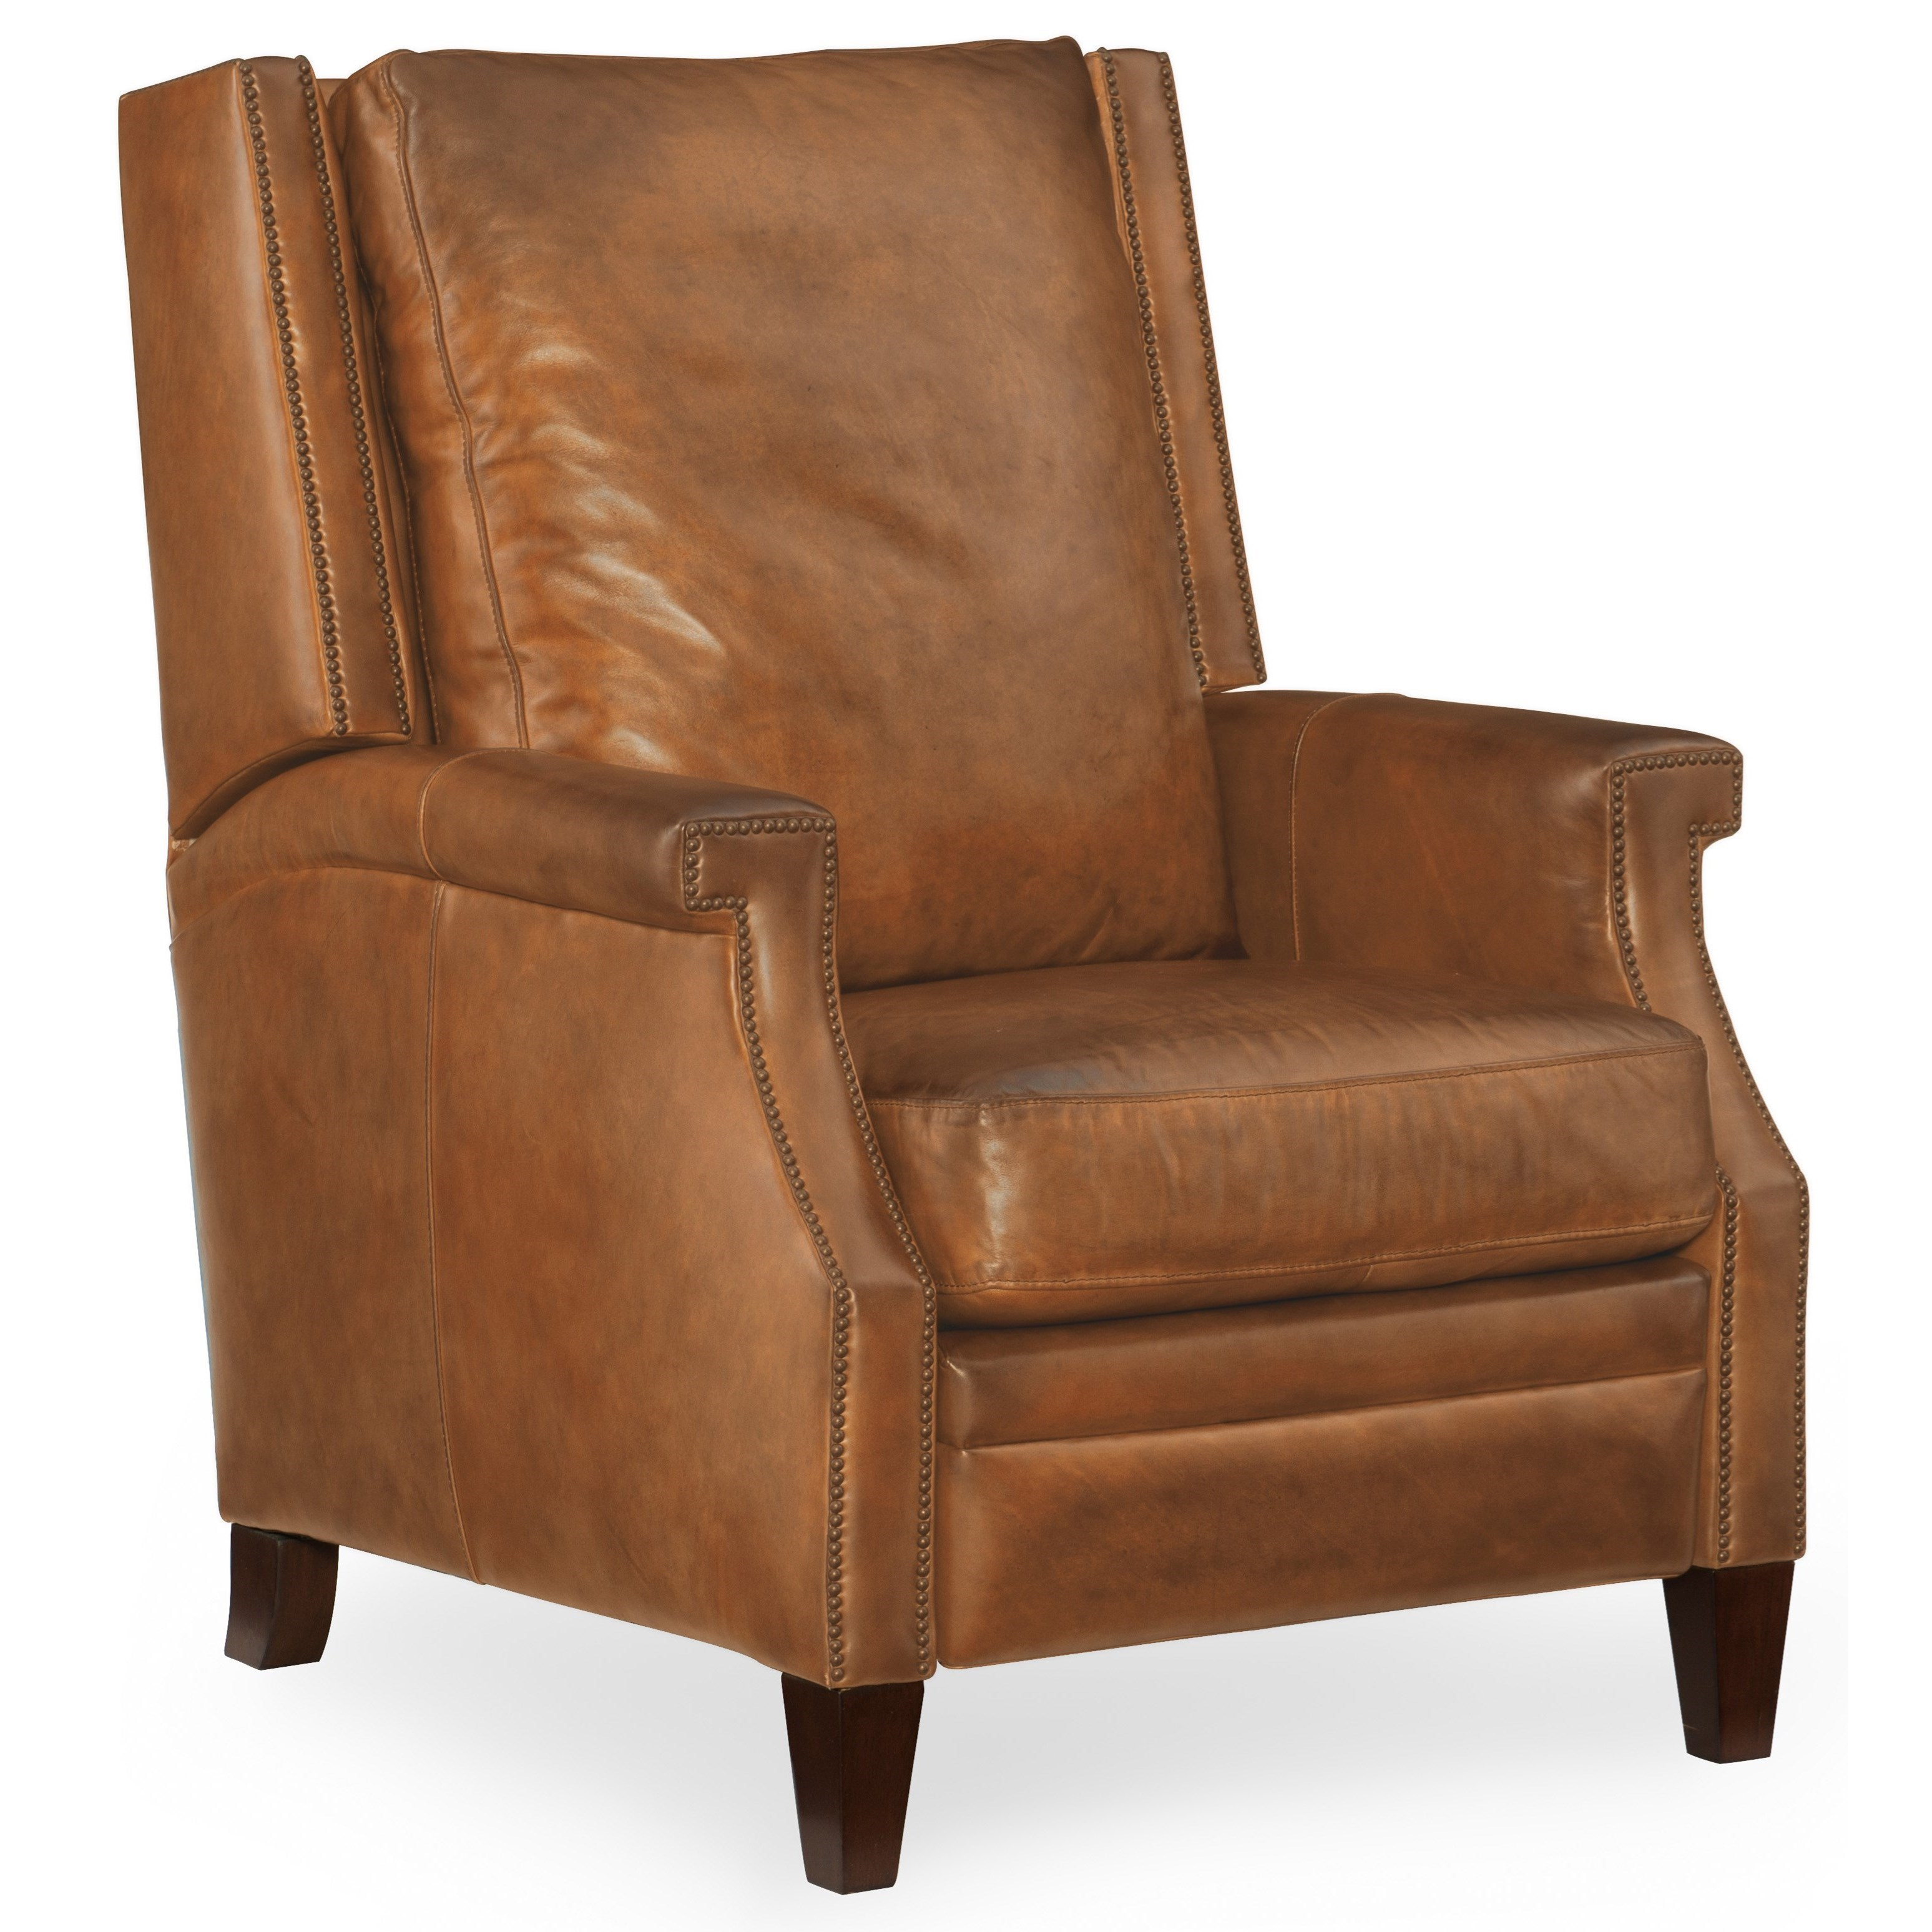 hooker furniture reclining chairs collin leather recliner with wing back baeru0027s furniture high leg recliners